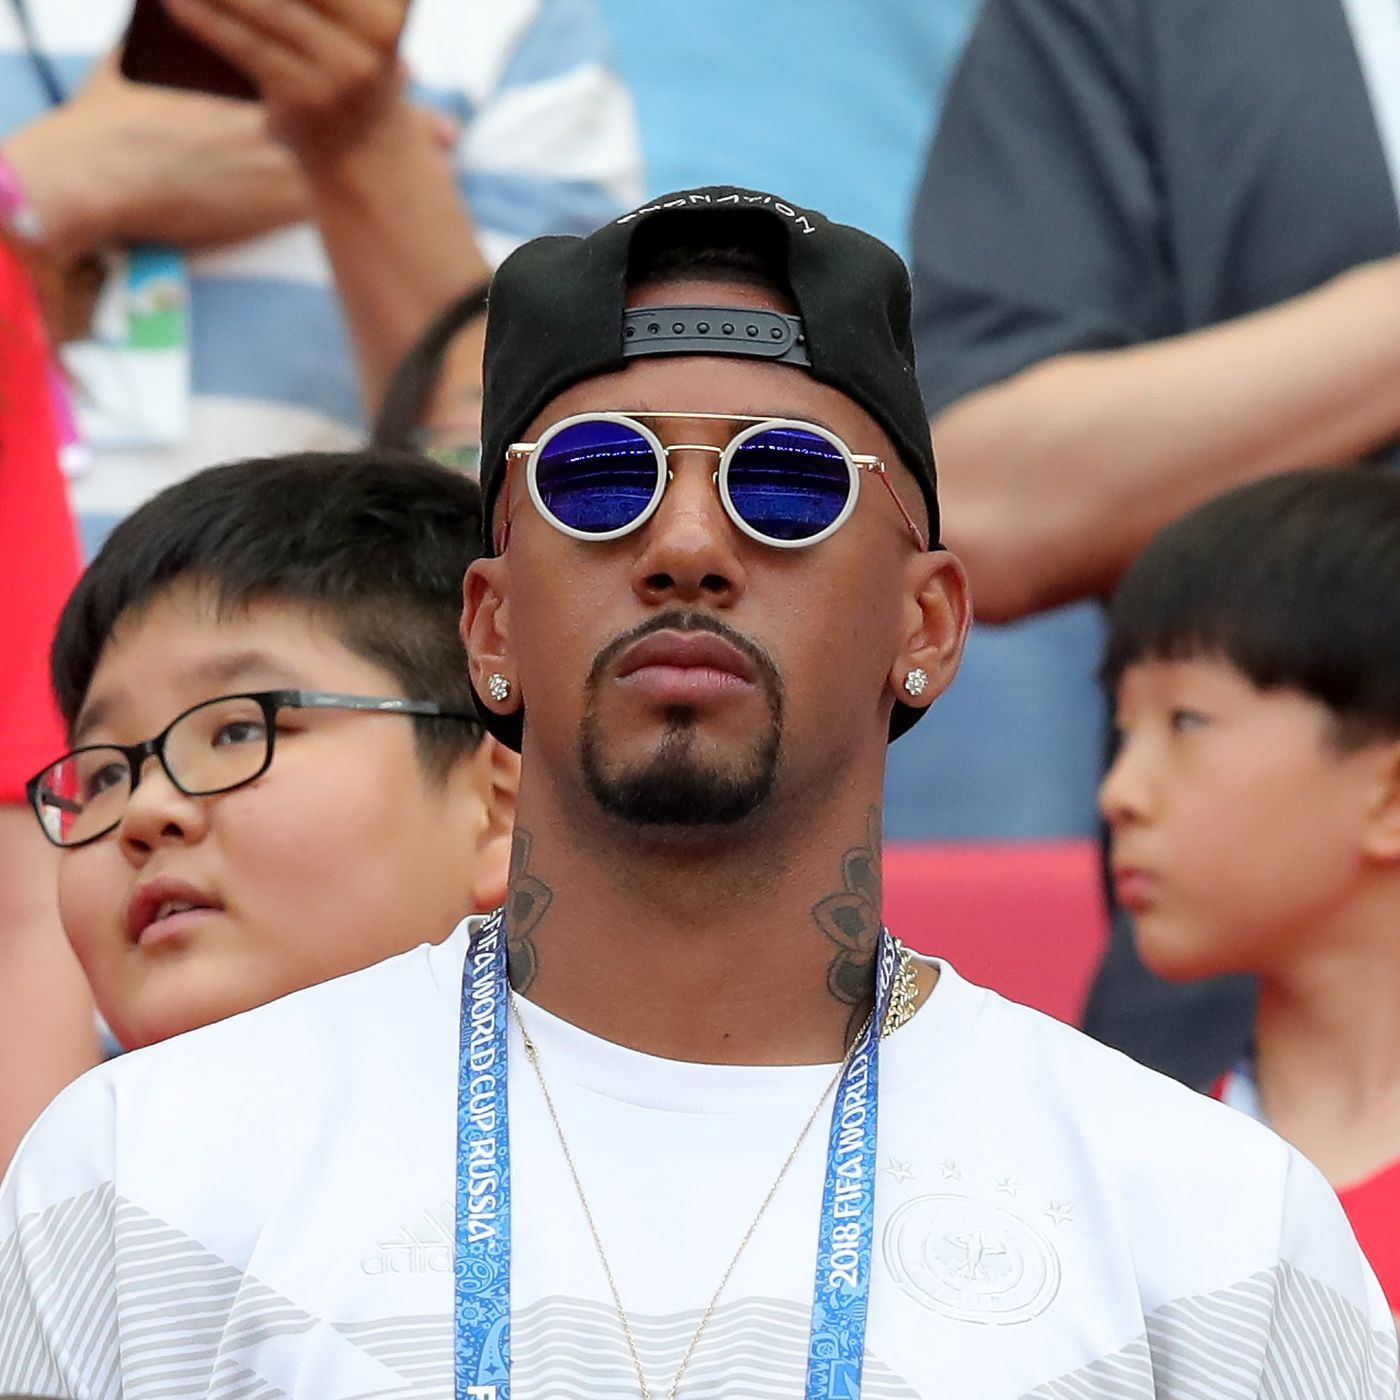 Boateng Questions Silence Of Ozils Germany Teammates Seeks Meeting With Bayern Leaders Over Lack Of Focus